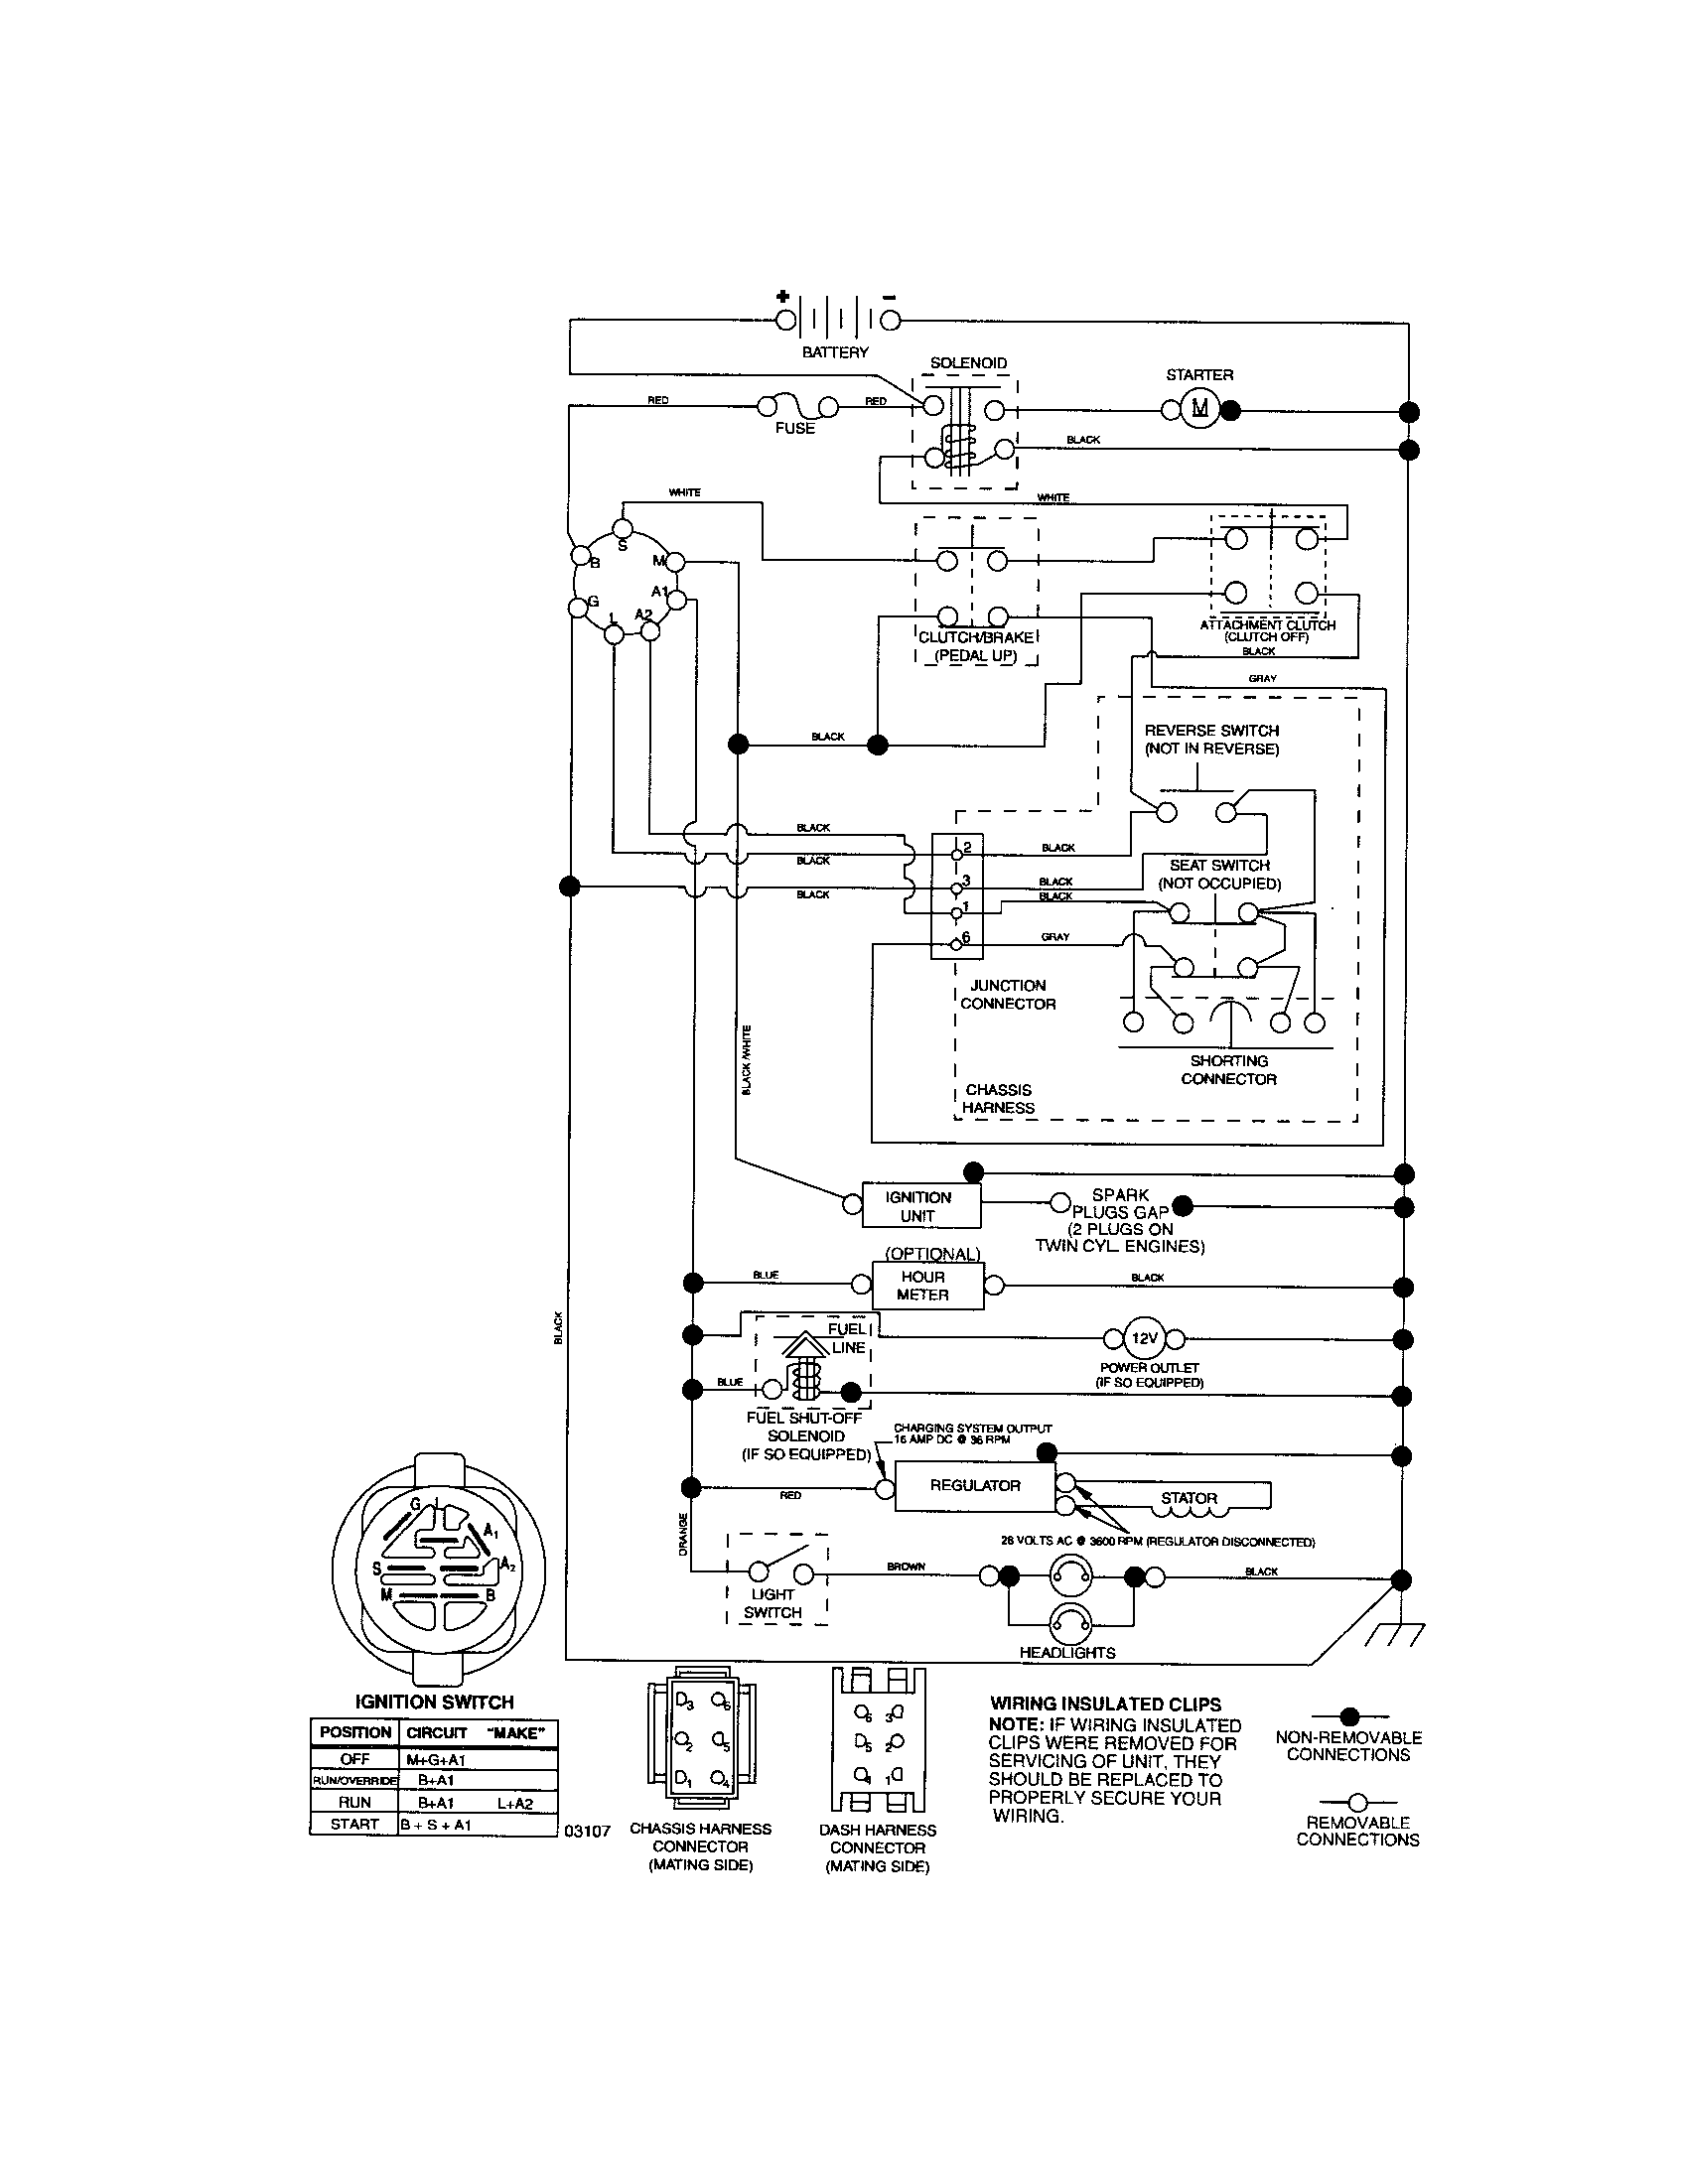 small resolution of wiring diagram lawn tractor craftsman wiring diagrams craftsman riding mower electrical diagram wiring diagram craftsman wiring